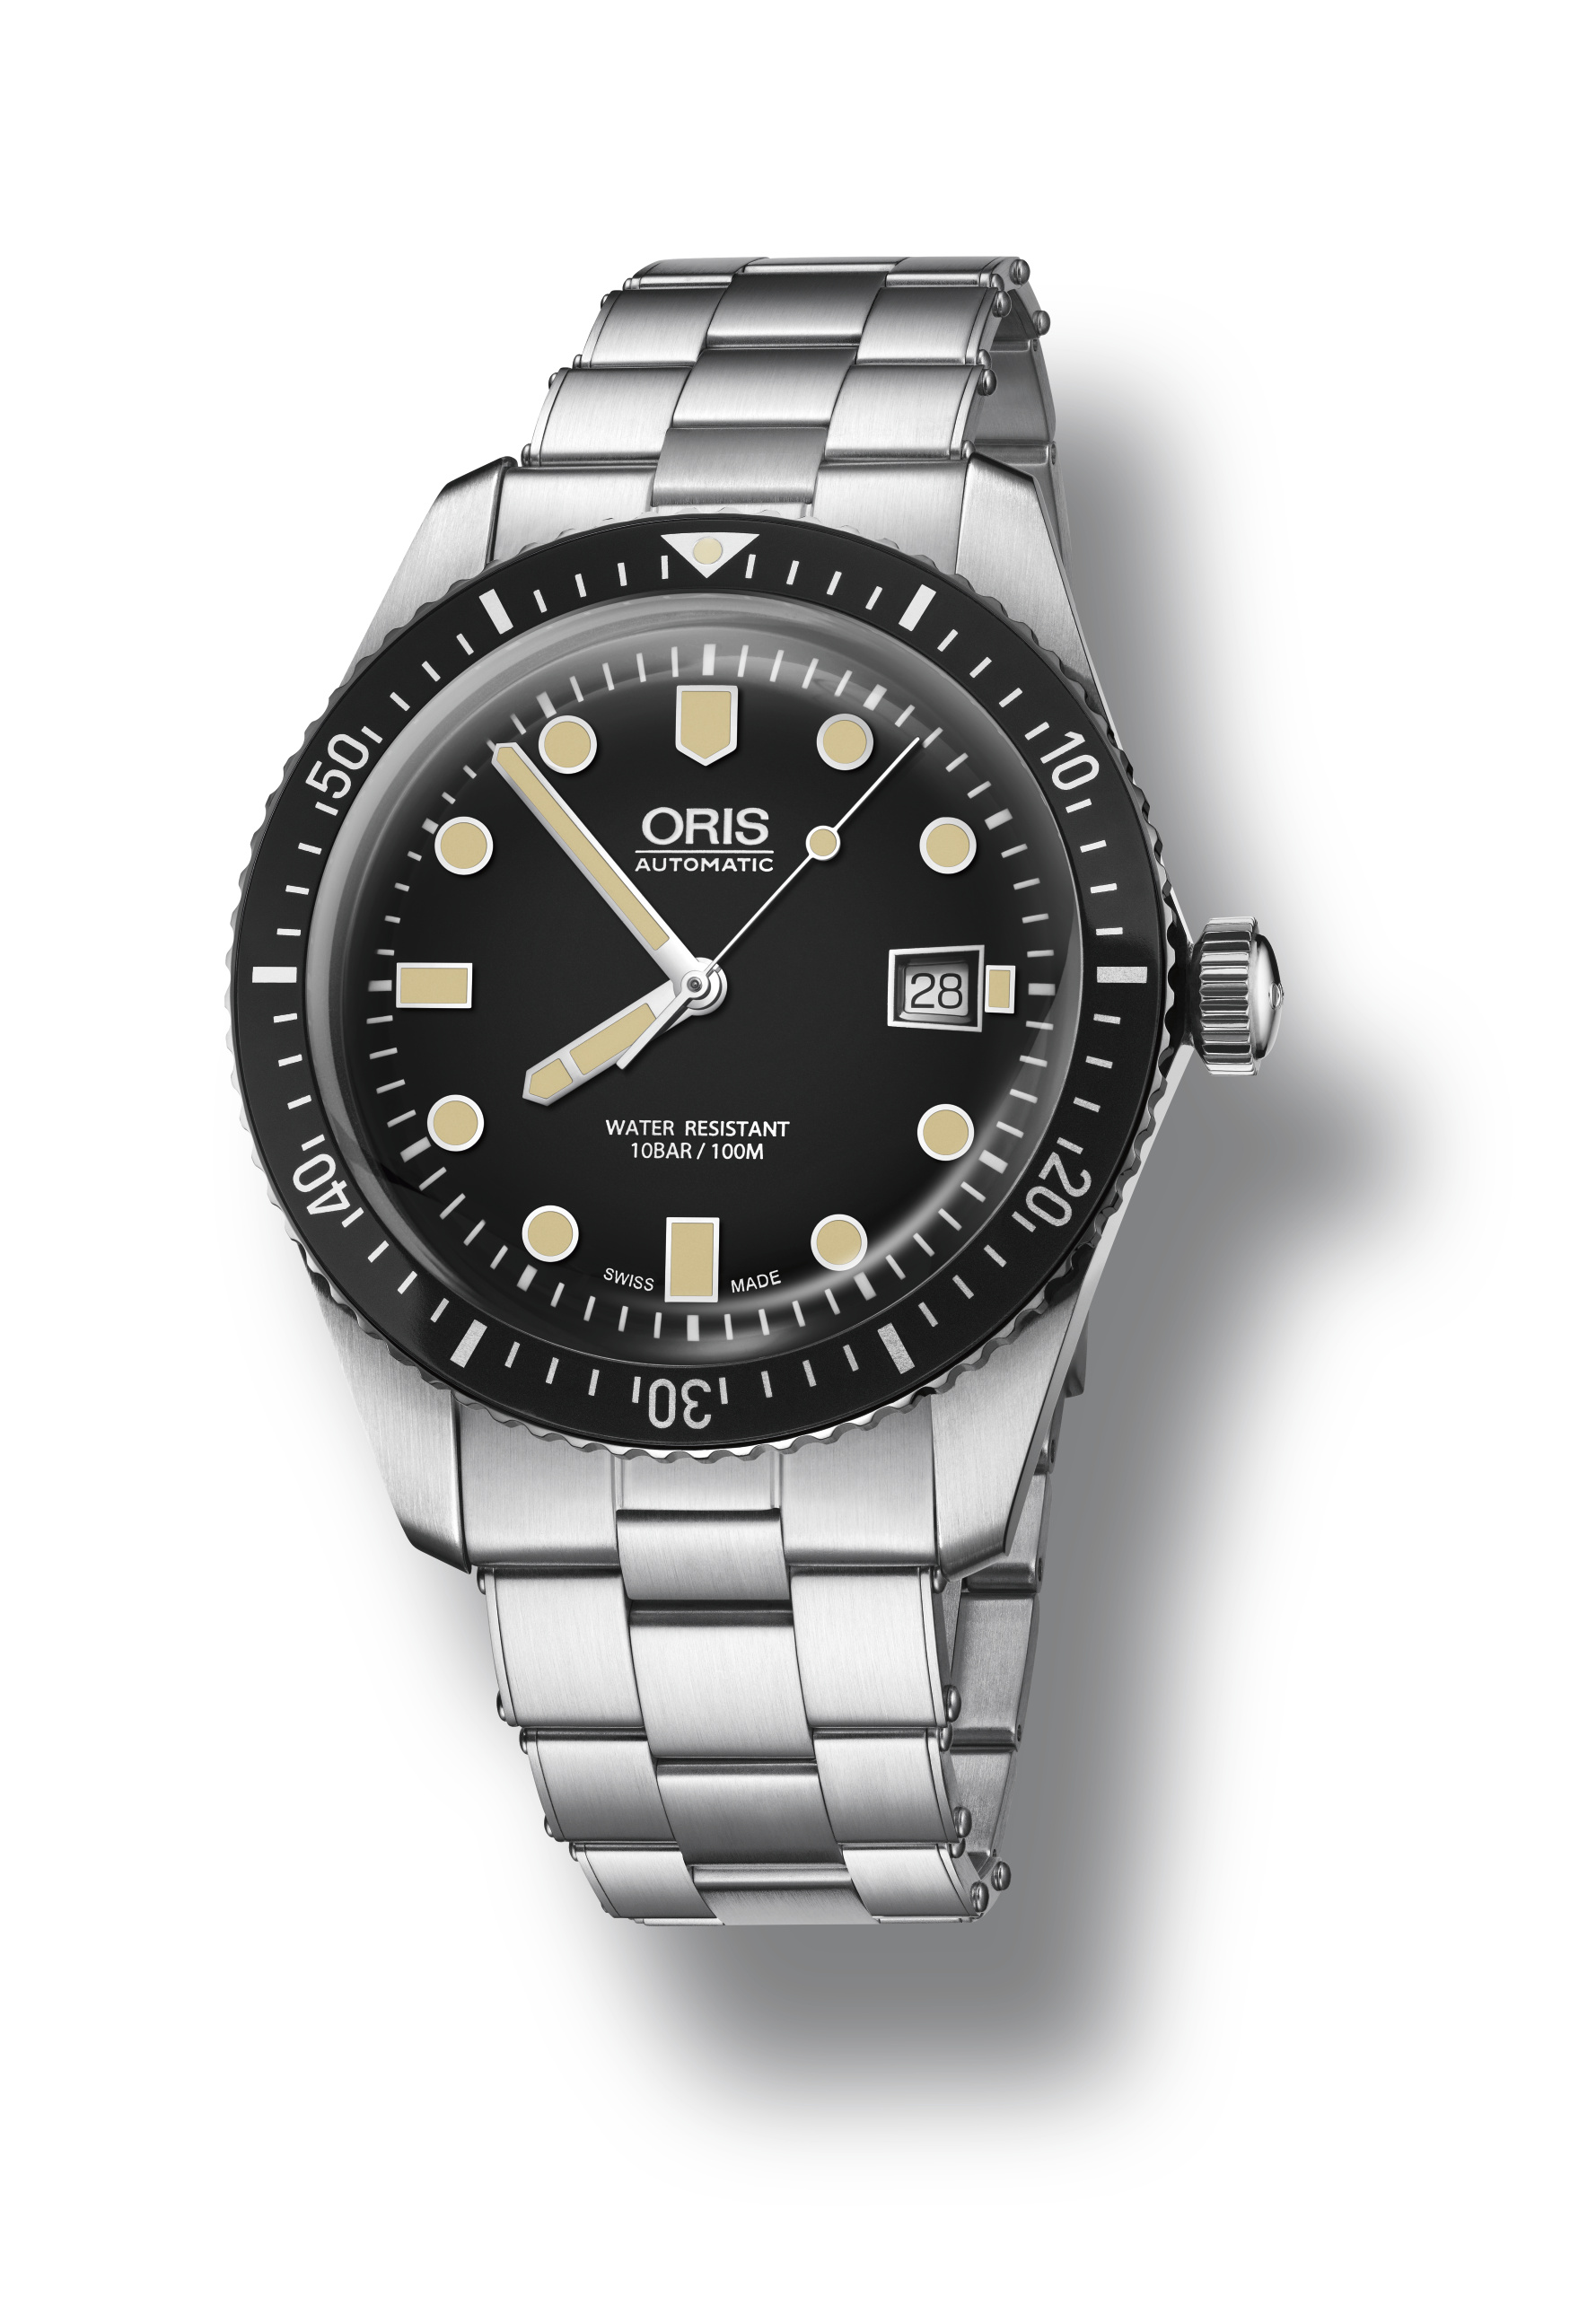 01 733 7720 4054-07 8 21 18 - Oris Divers Sixty-Five